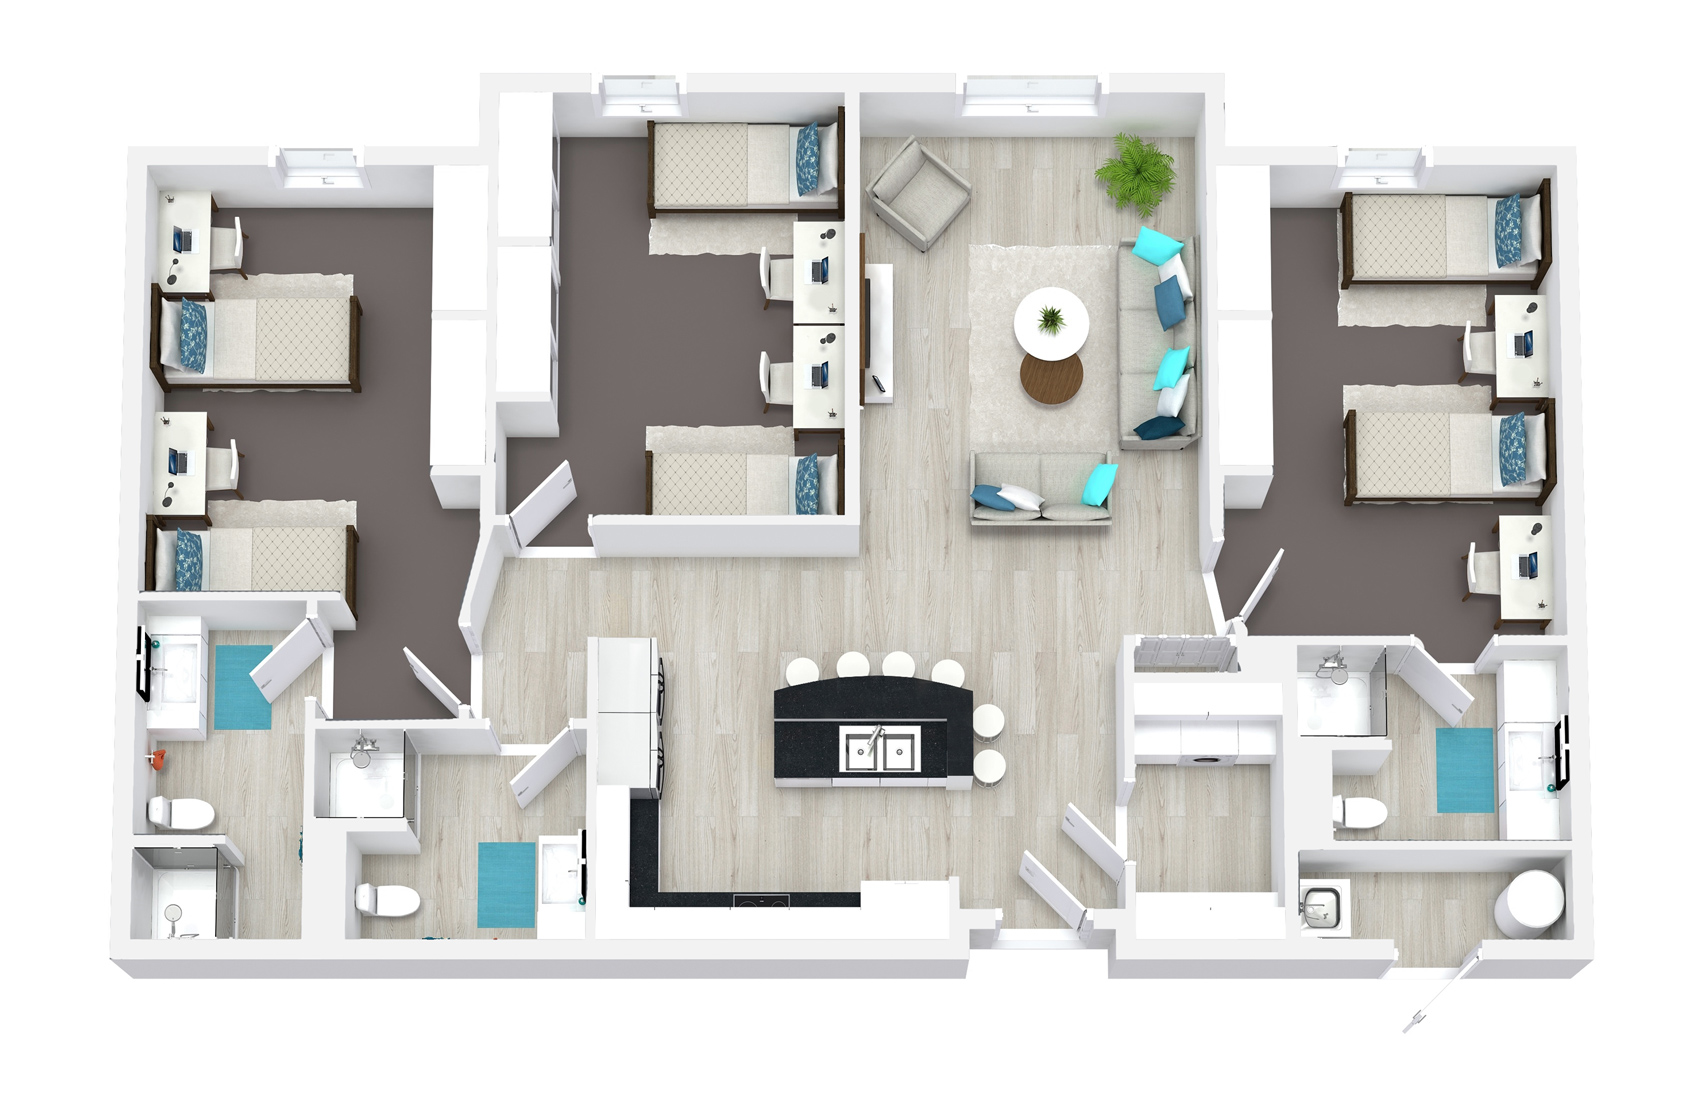 Abri Apartments Floor Plans